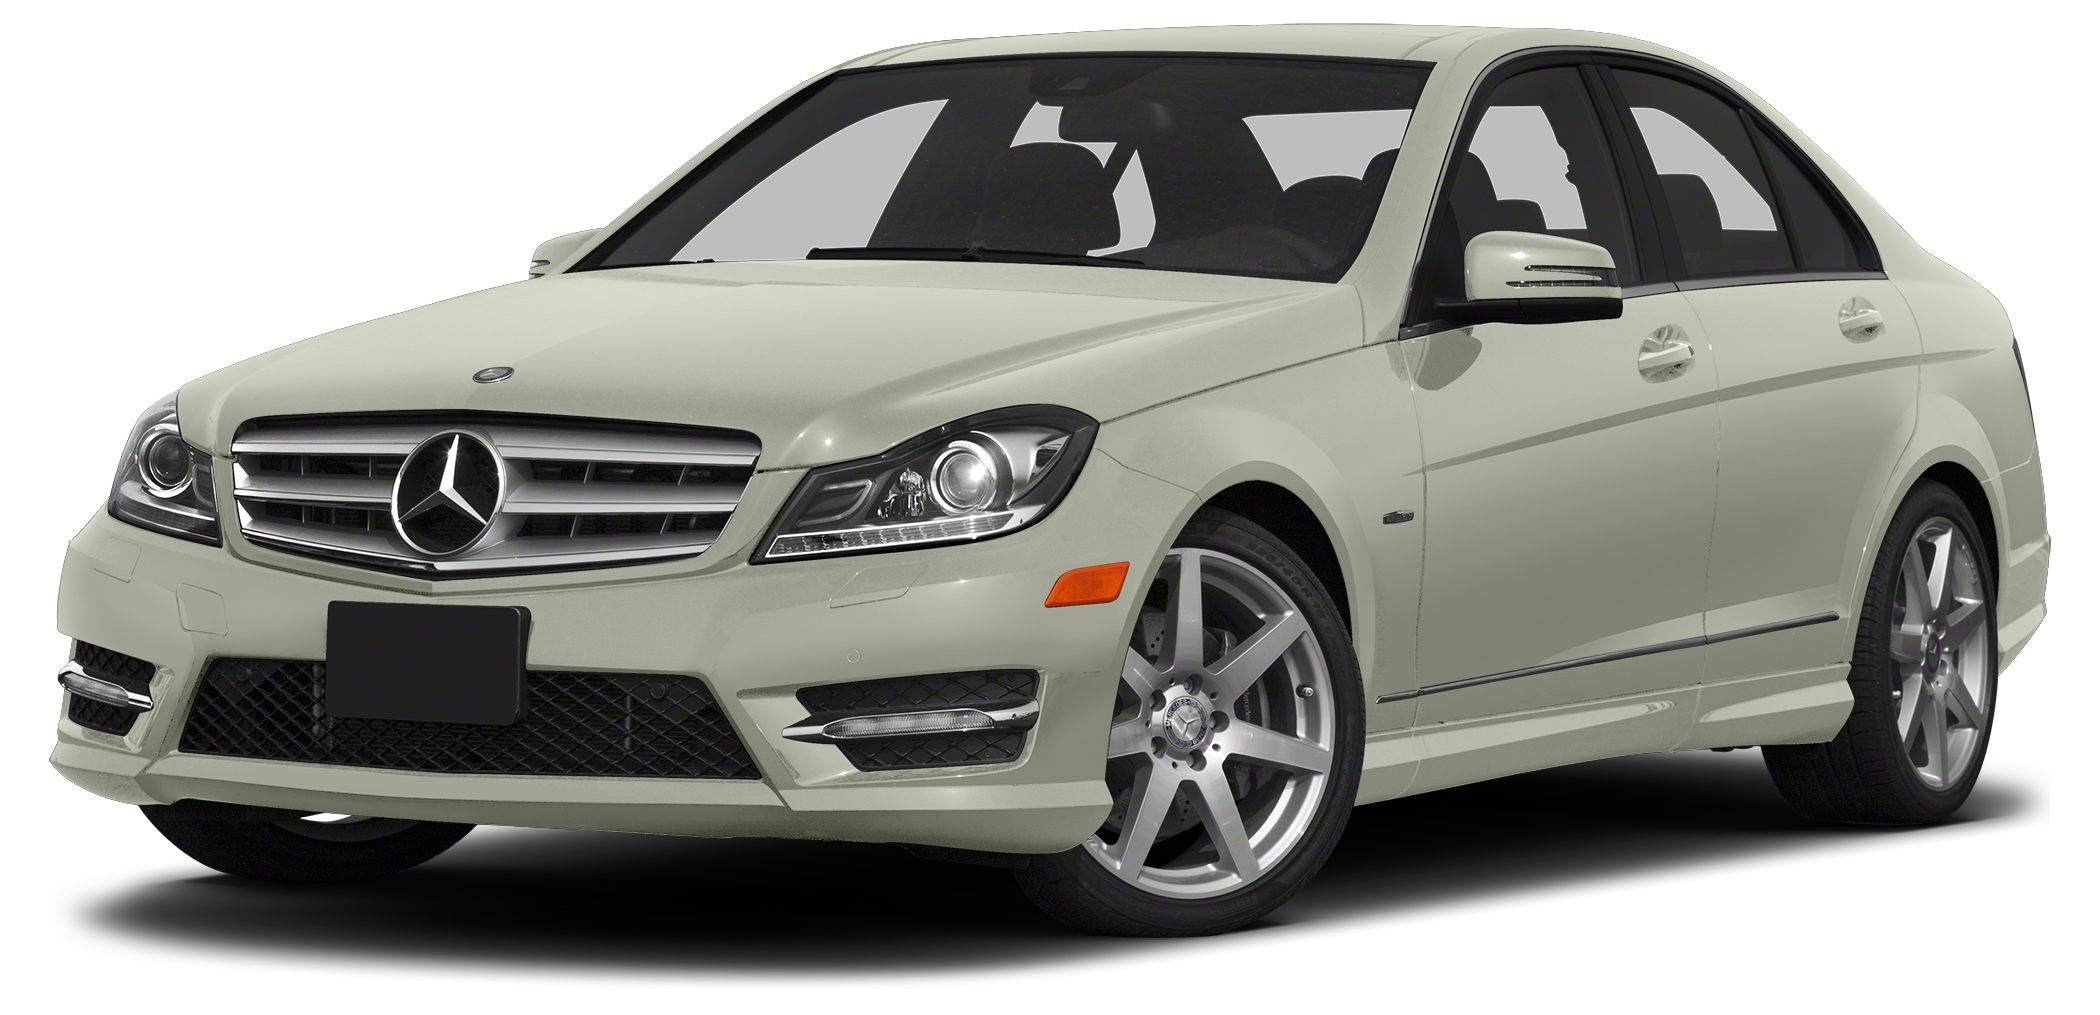 2013 MERCEDES C-Class C350 Sport We sold this one owner C350 Sport sedan new We have CPO Certifie